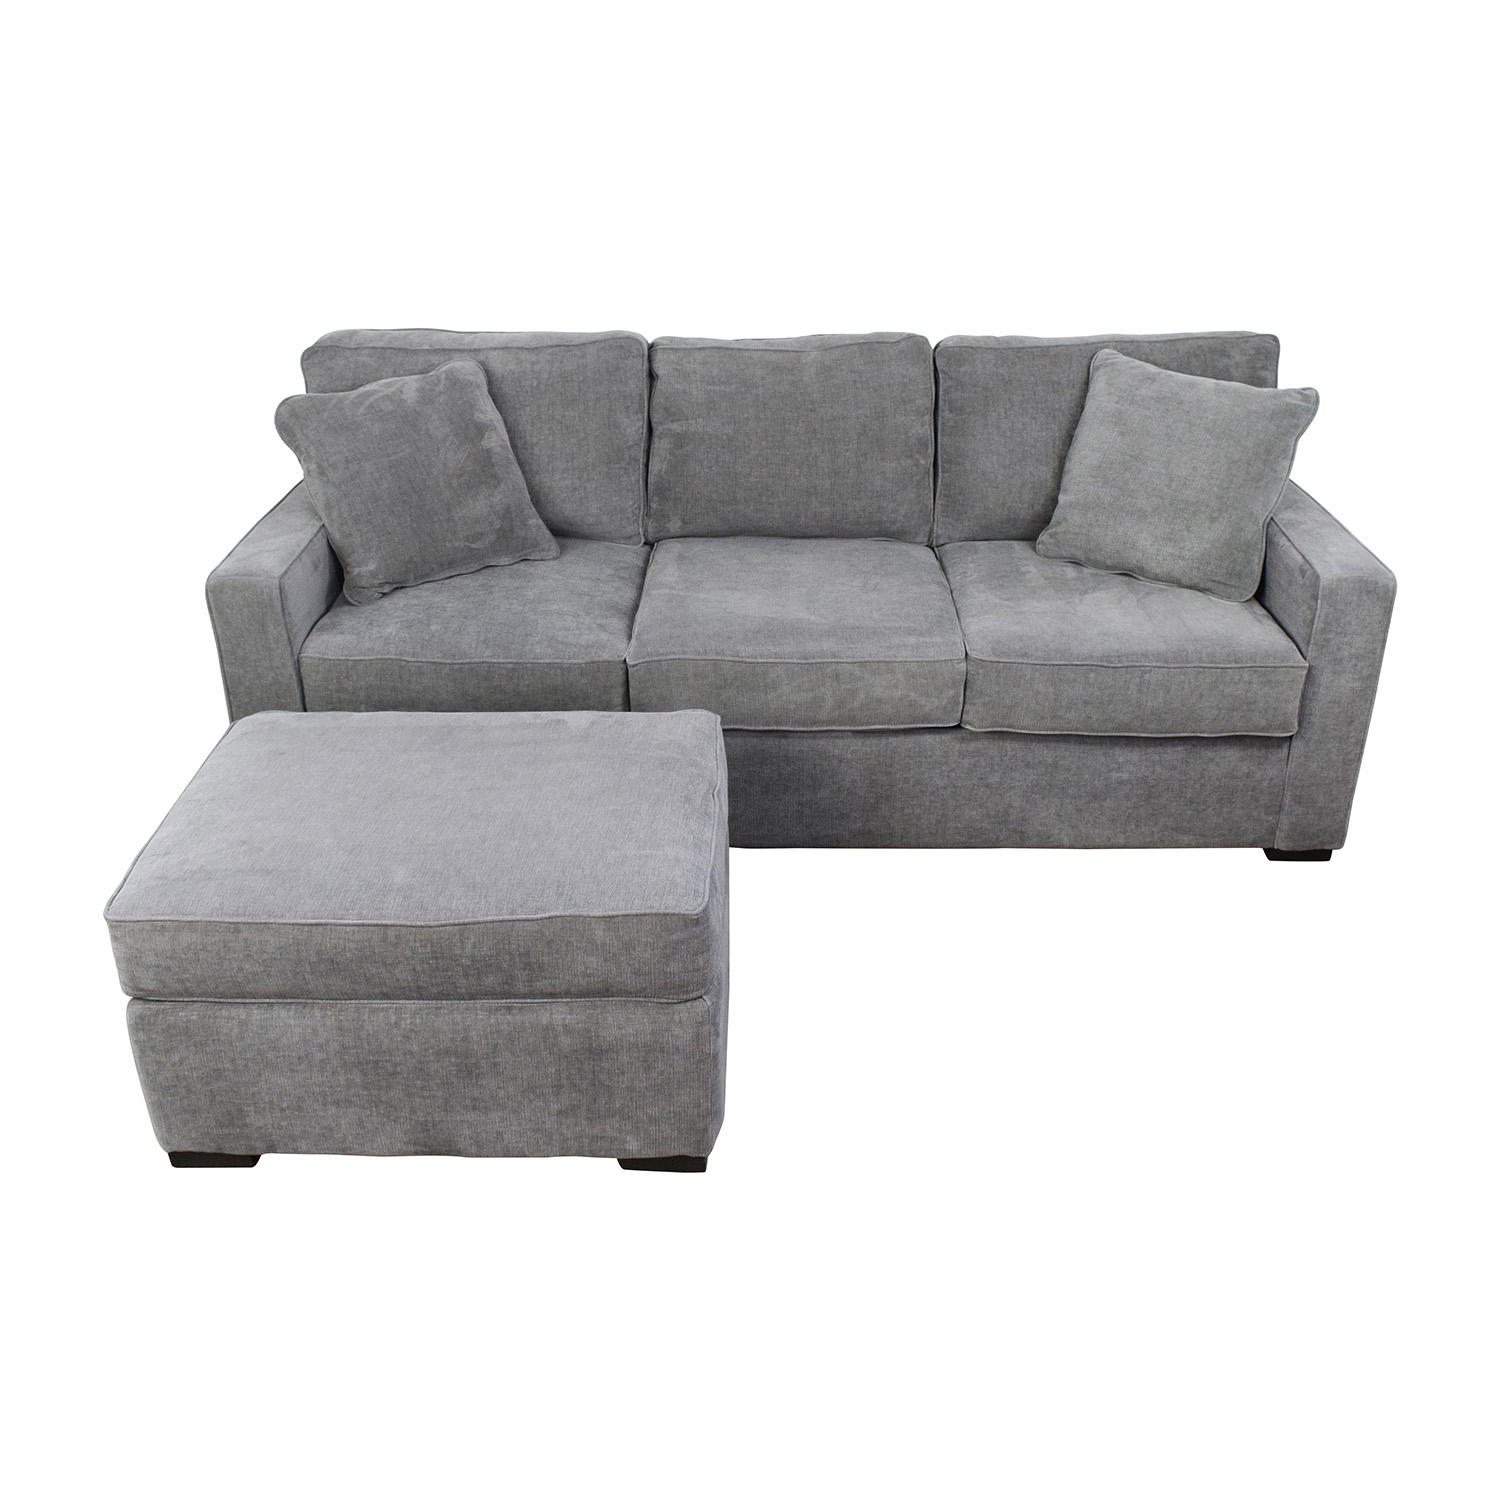 ... Macys Macys Radley Grey Sofa And Ottoman Sofas ...